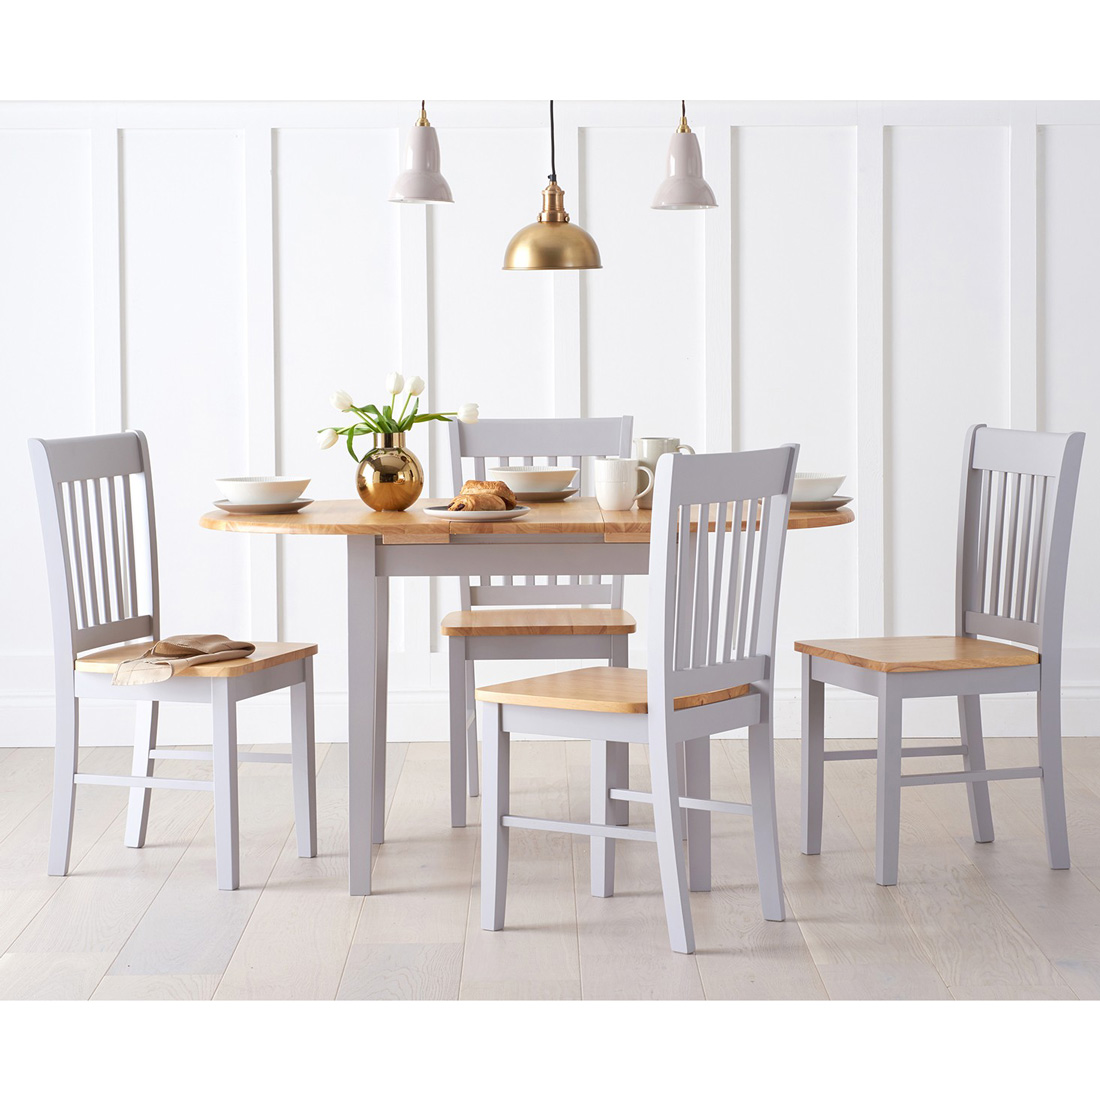 Adler Oak & Grey Dining Set with 4 Chairs